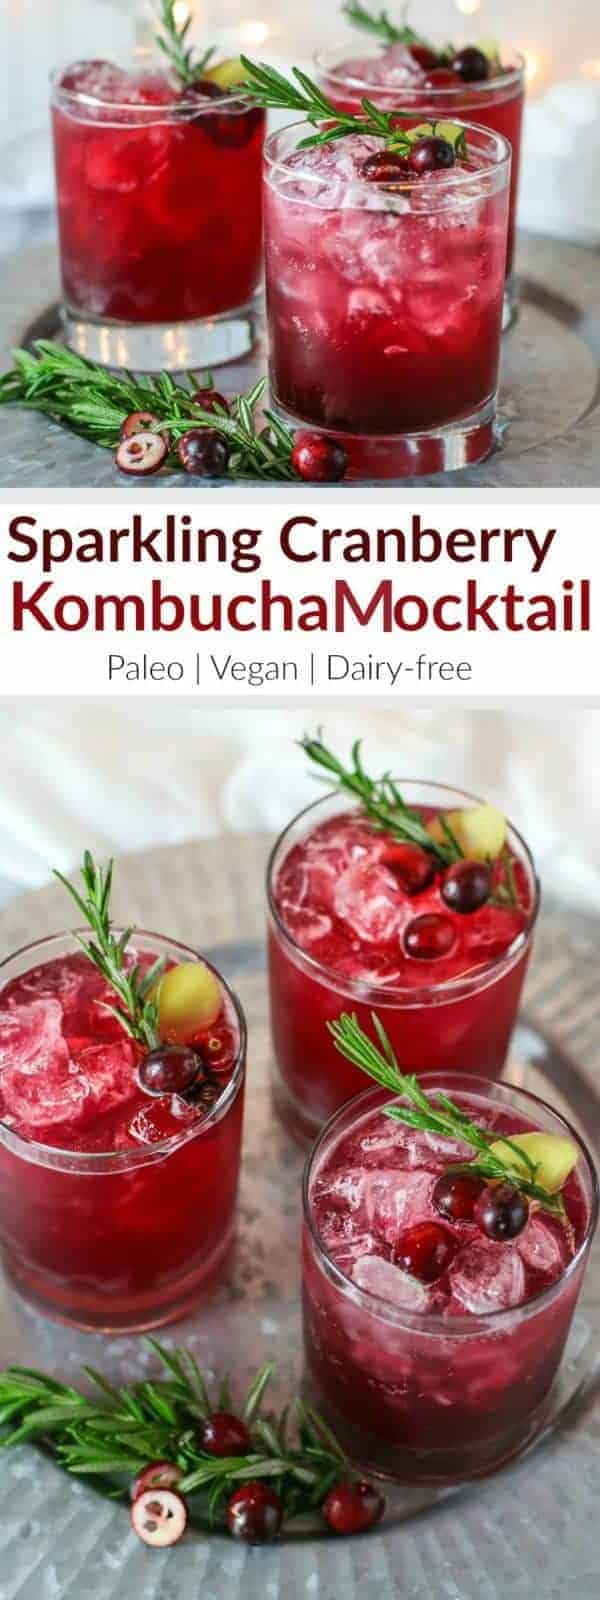 Sparkling Cranberry Kombucha Mocktail - The Real Food ...